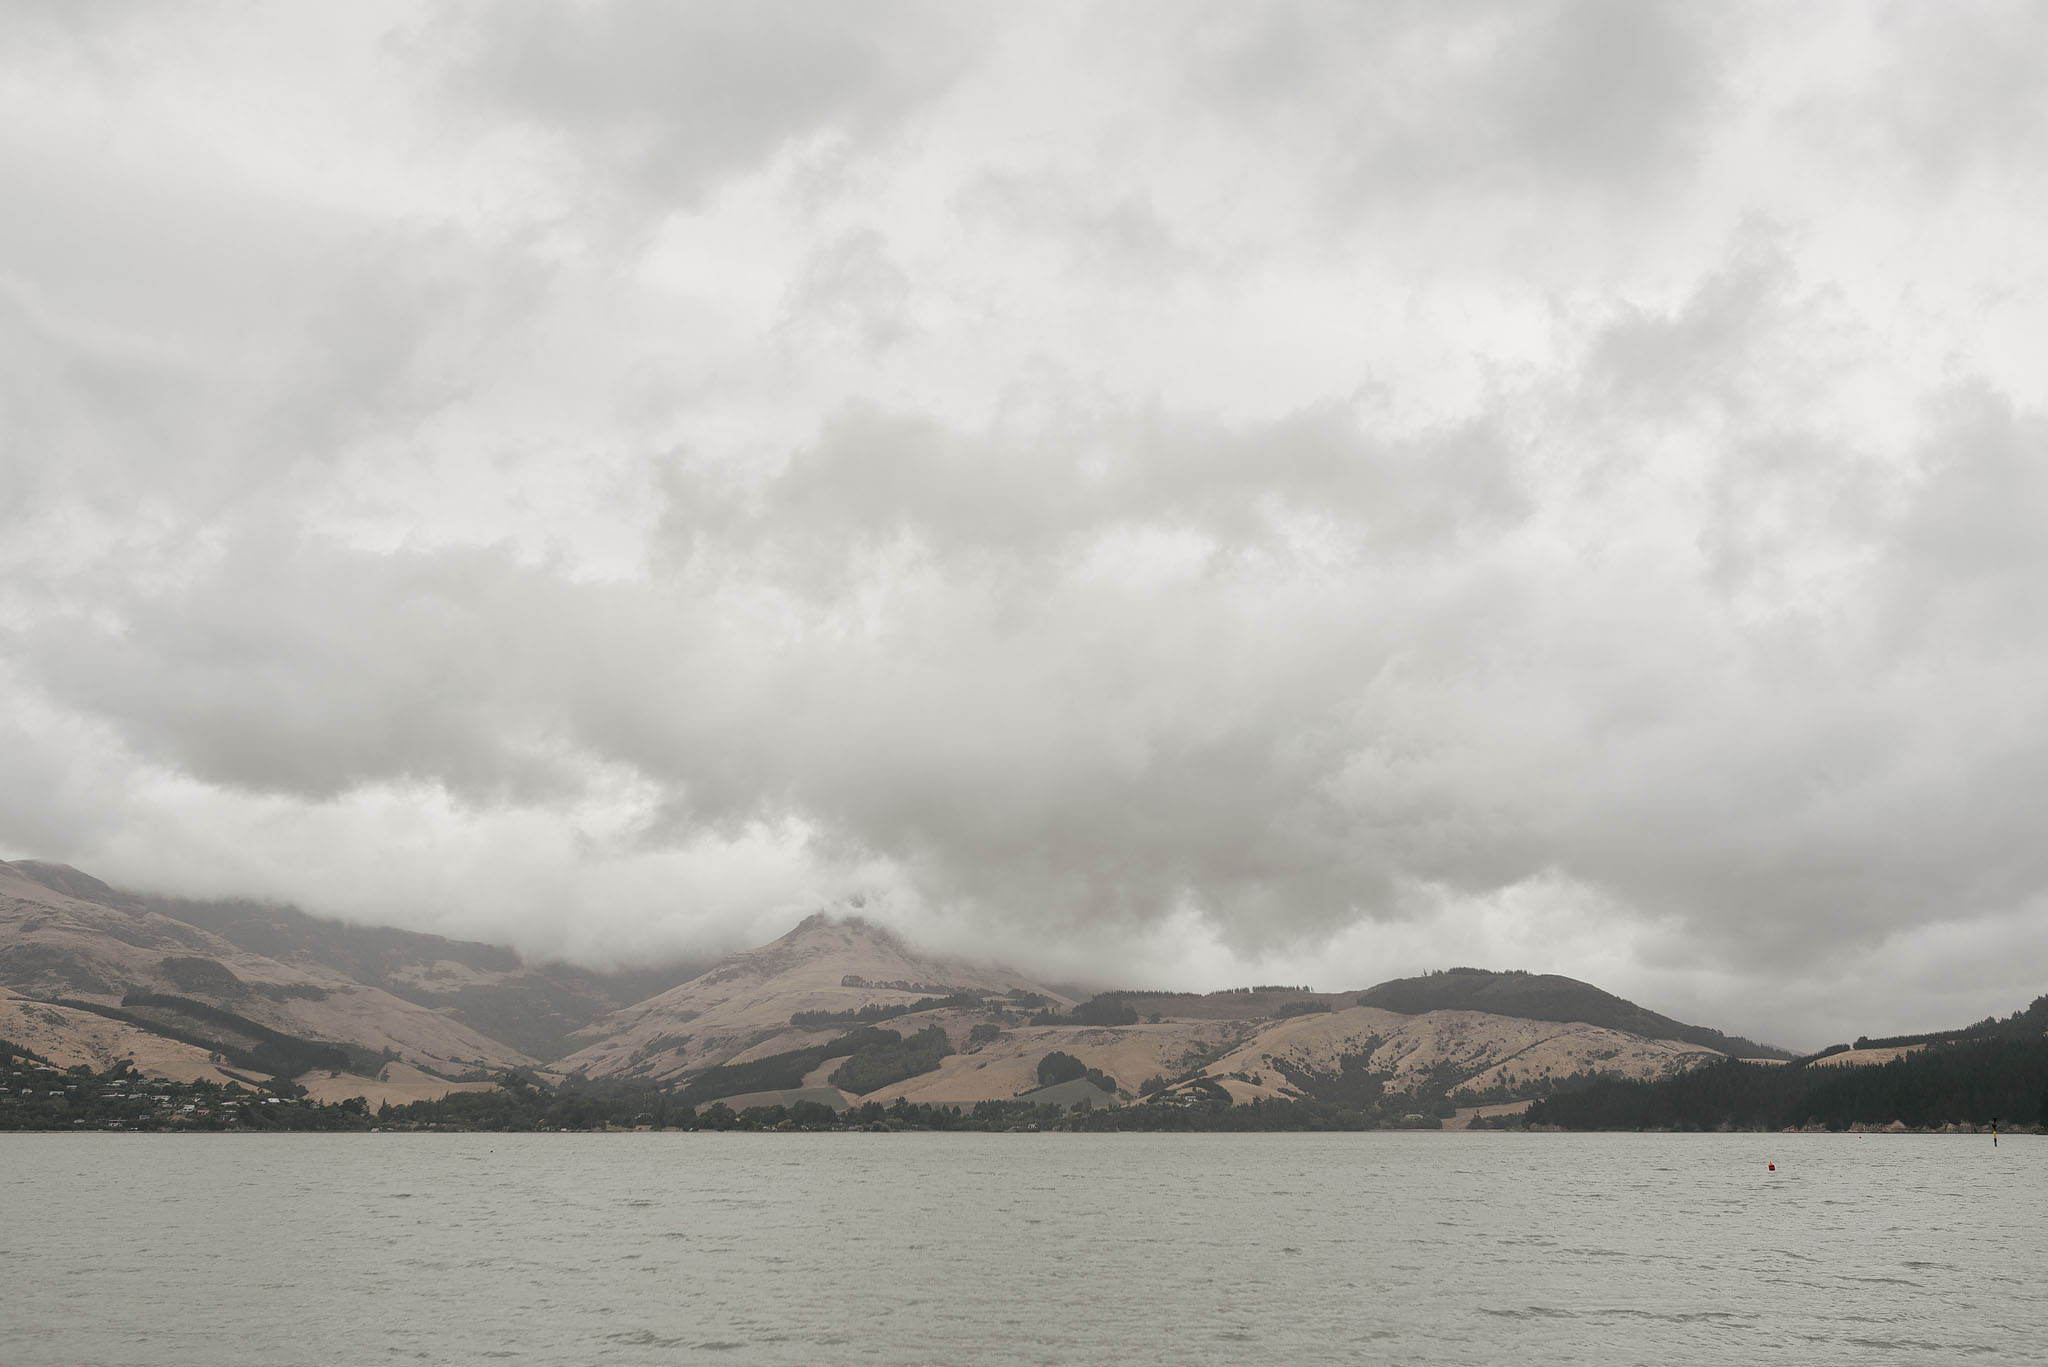 Lyttelton harbour - view from Quail Island